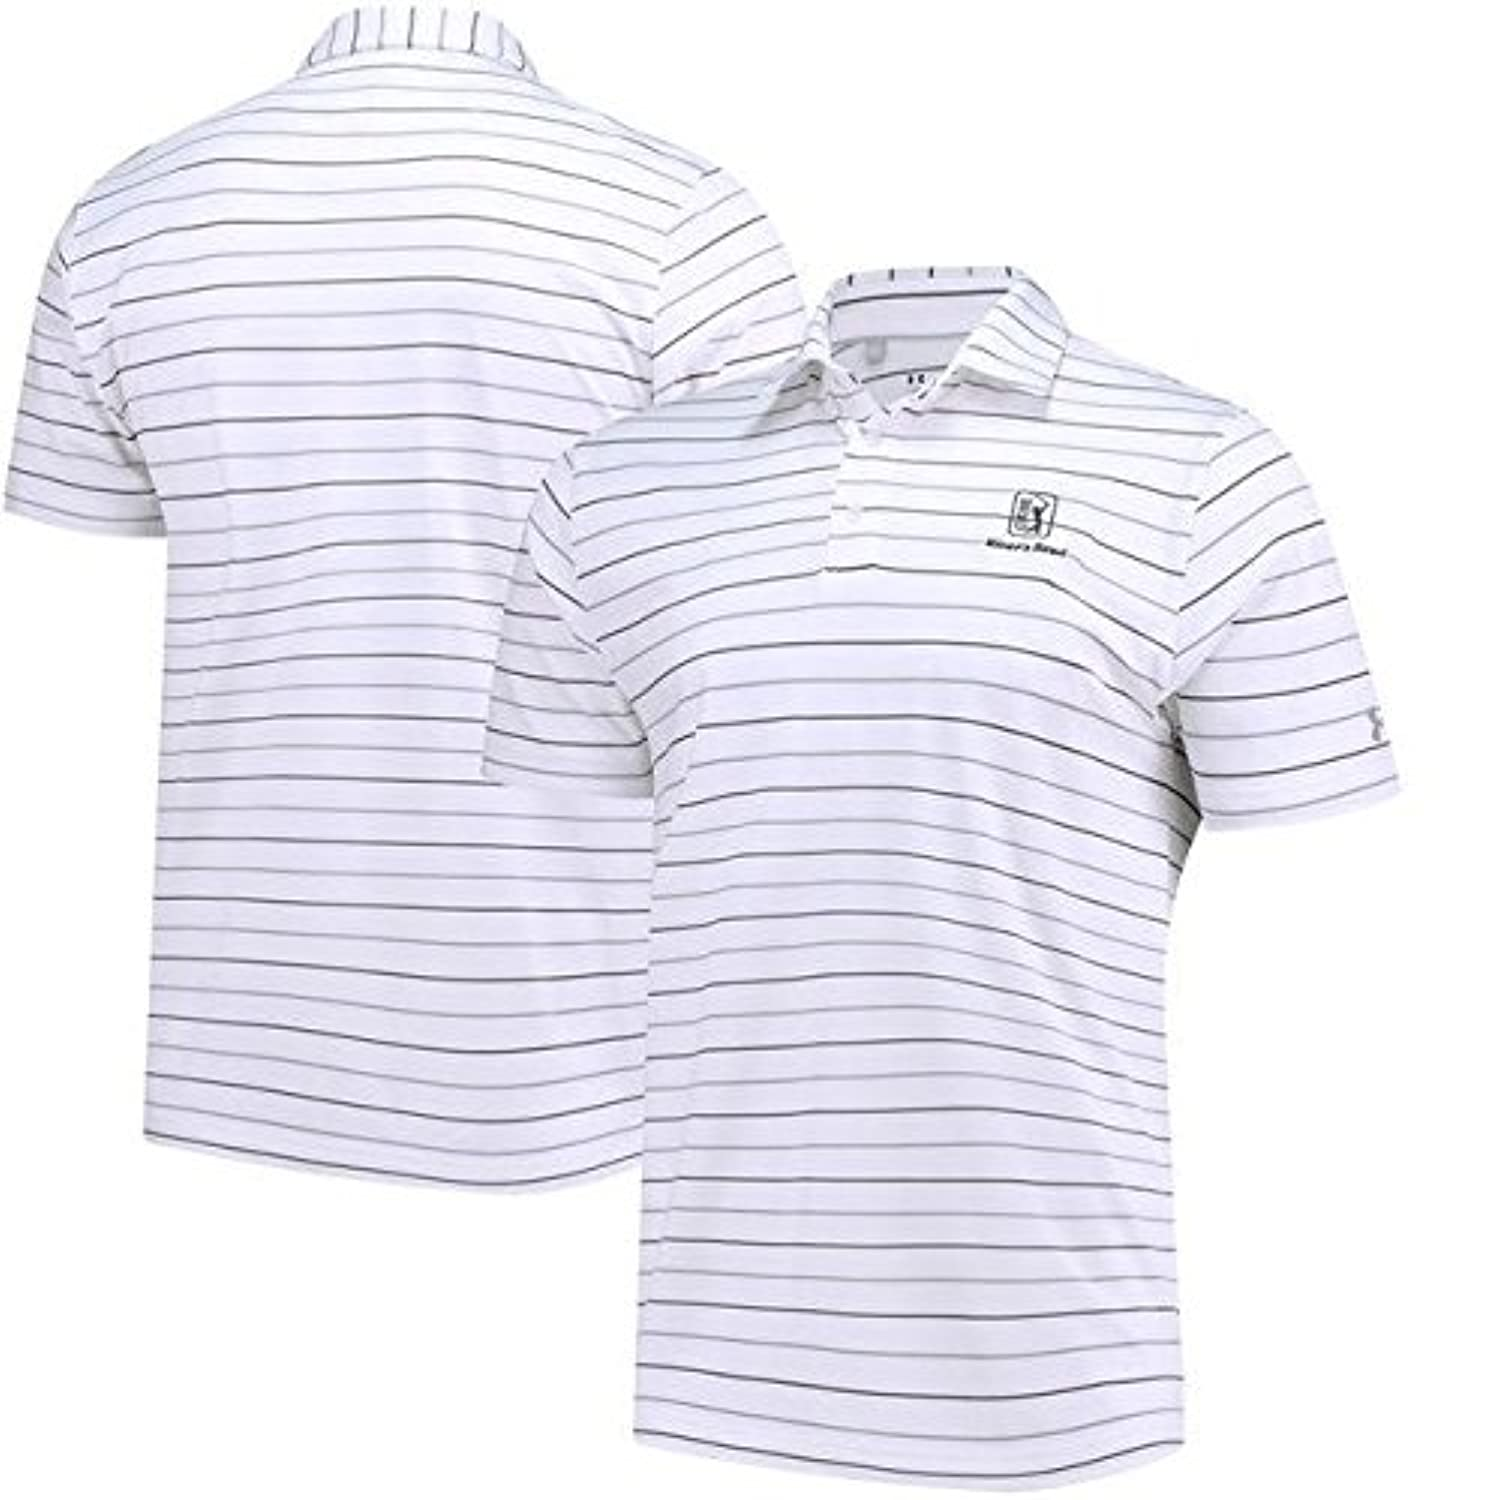 Under Armour Under Armour TPC River's Bend White Performance Stripe 2.0 Polo スポーツ用品 【並行輸入品】